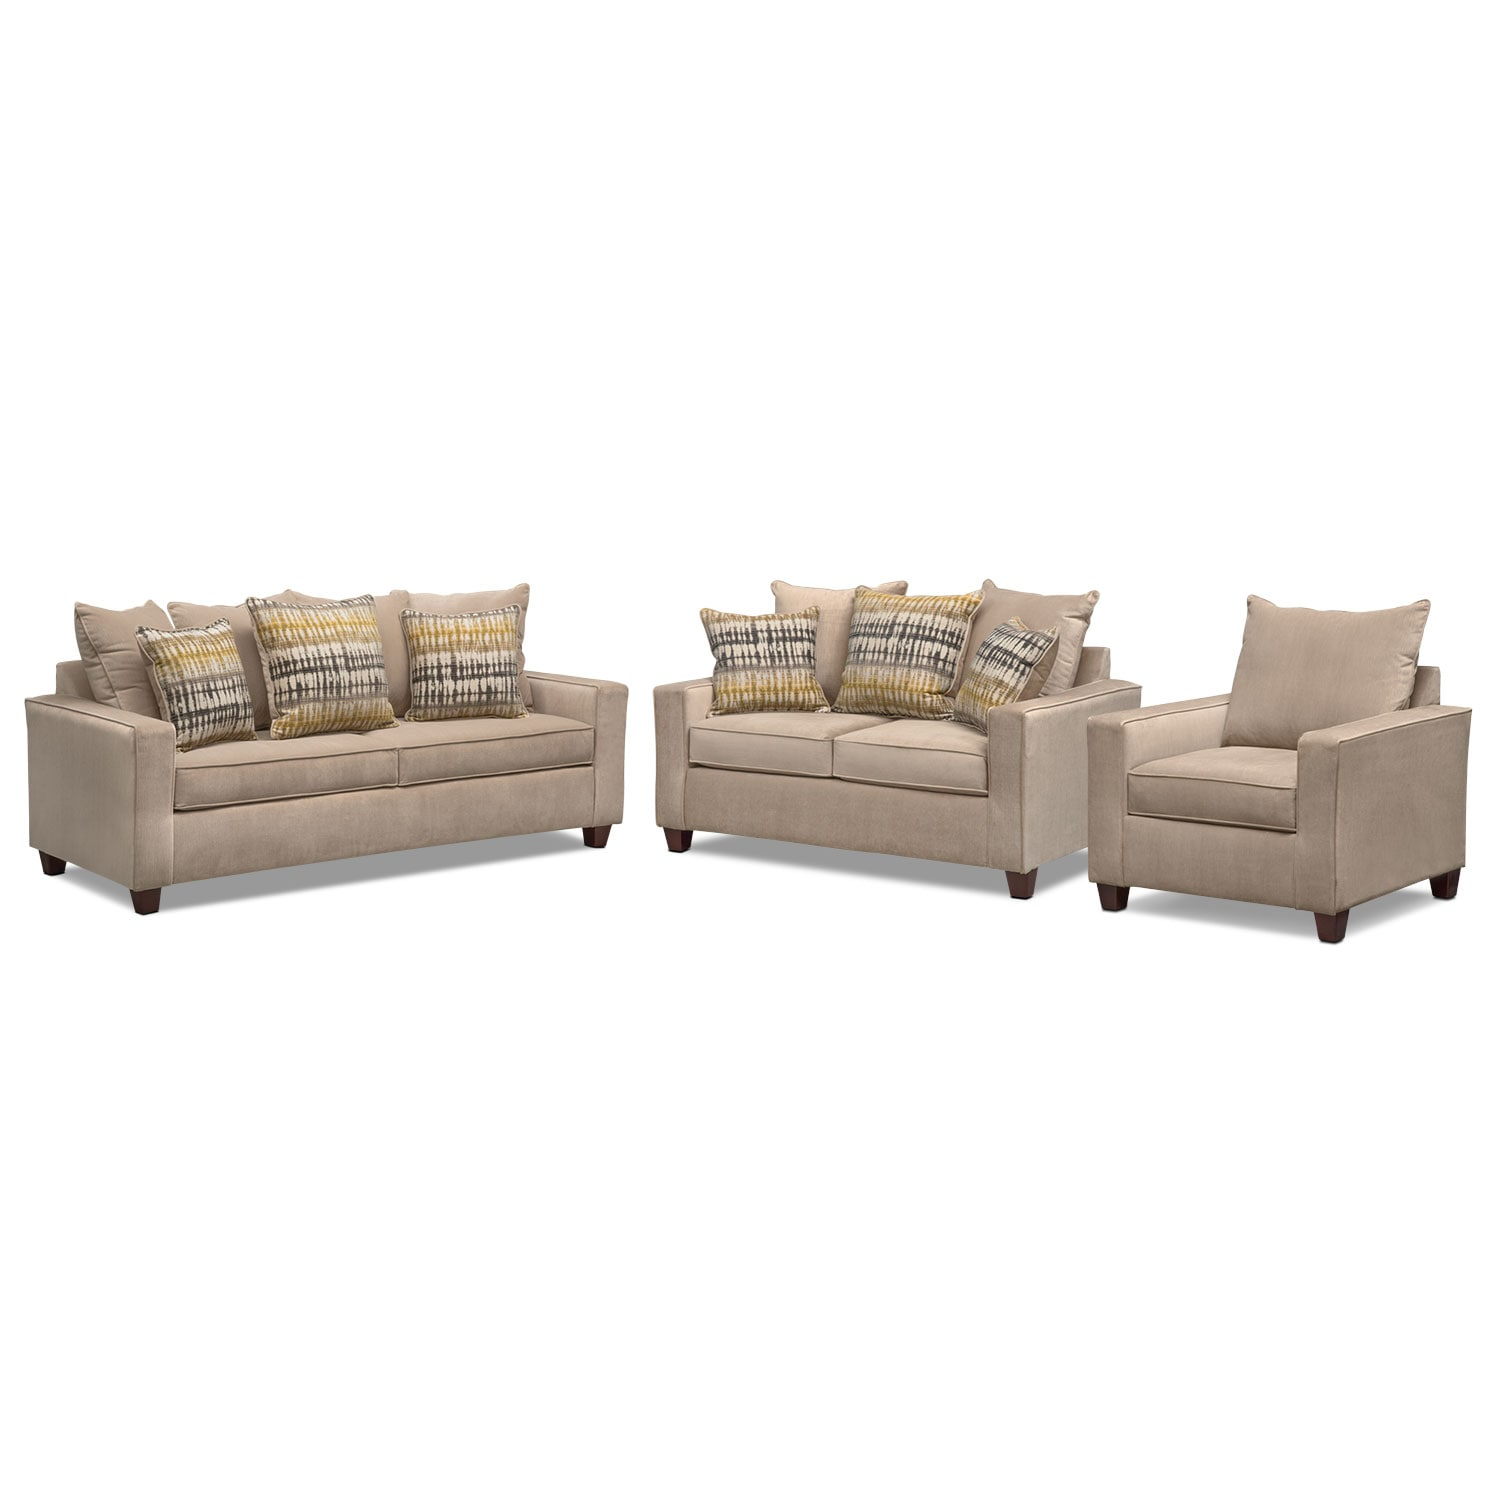 Bryden Sofa Loveseat And Chair Set Beige Value City Furniture  ~ Sofa Loveseat And Chair Sets